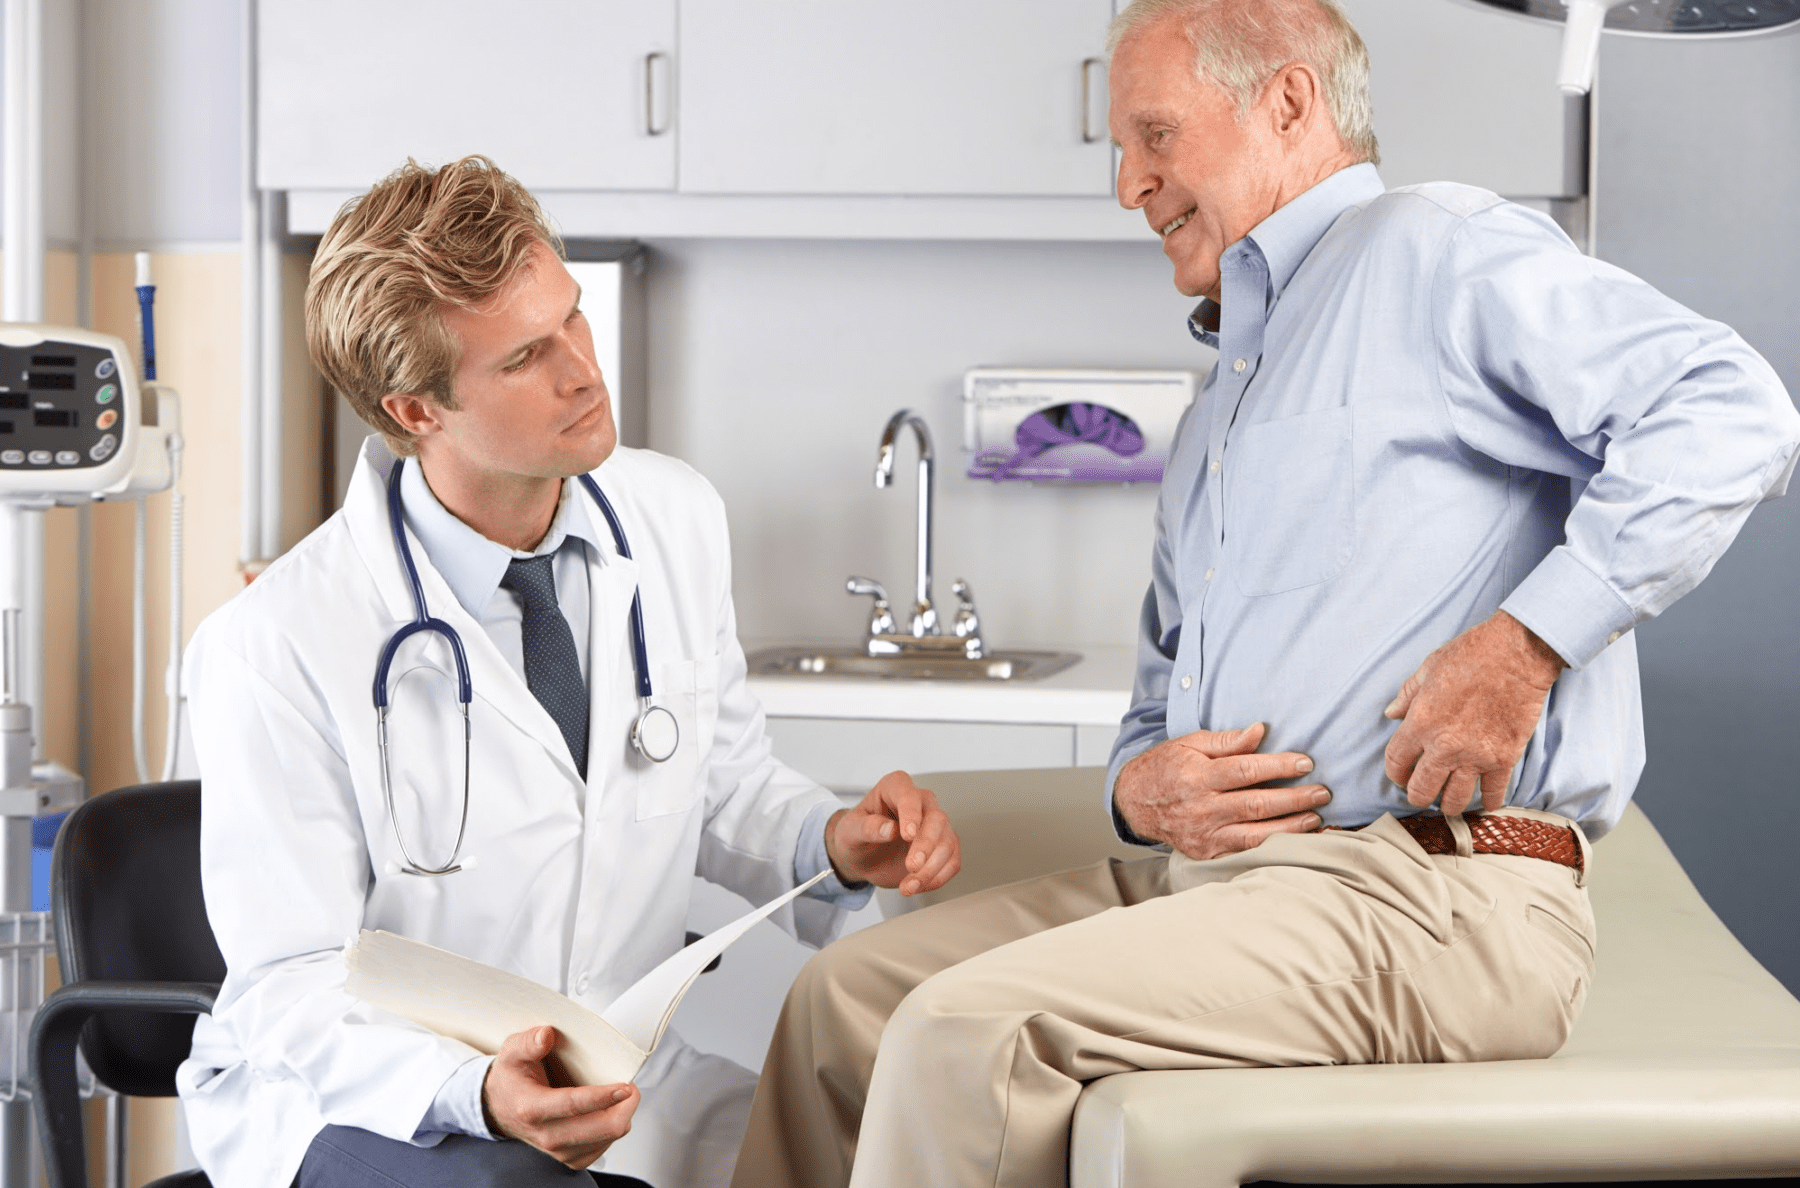 Hip Replacement Surgery Abroad | The Cost Guide For Traveling Patients